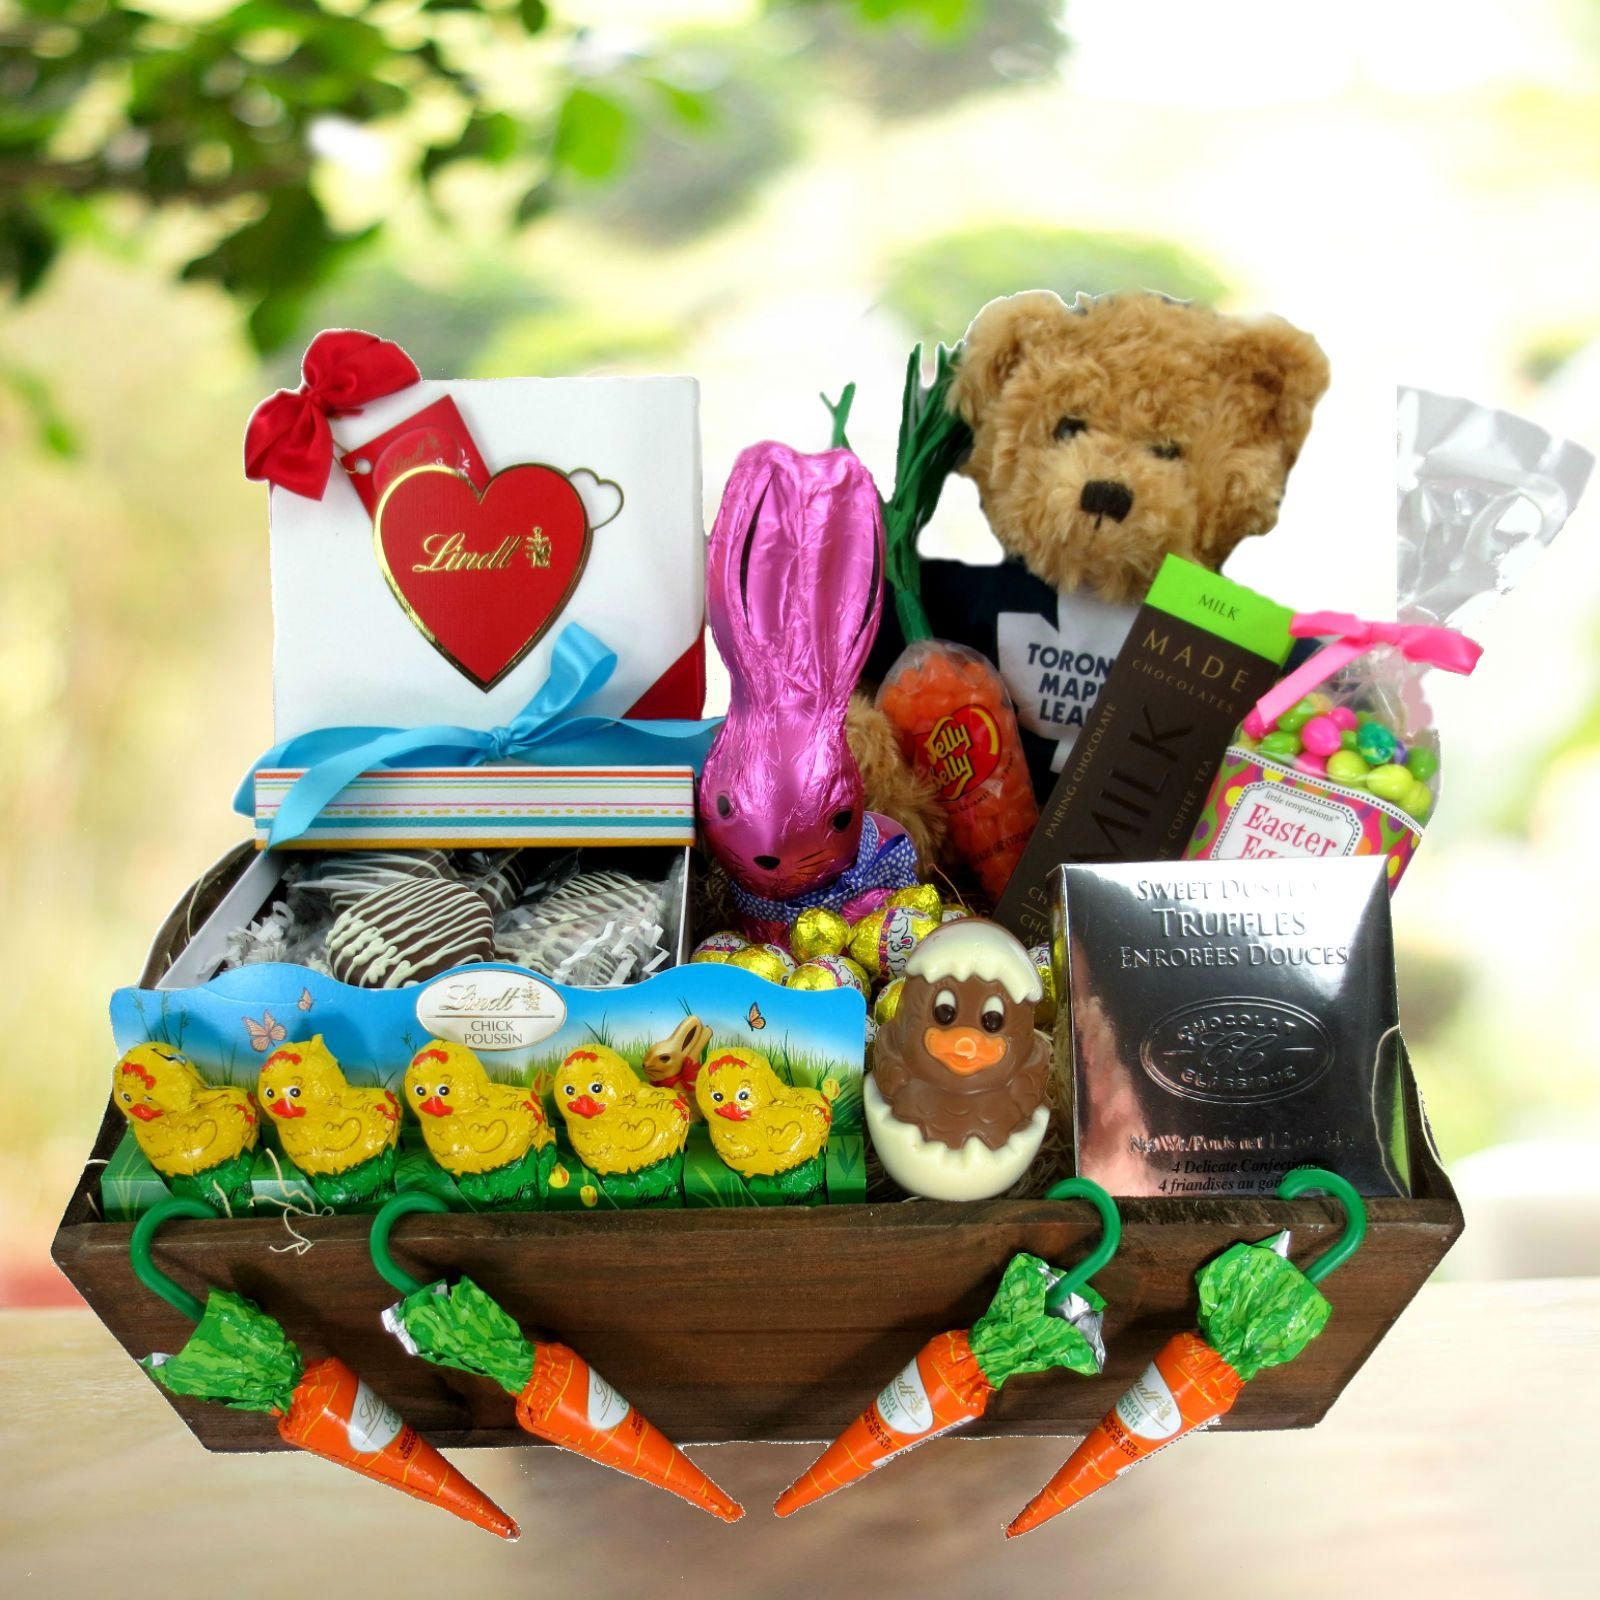 Reviews hazeltons gift baskets maple leafs bear easter gift basket negle Gallery